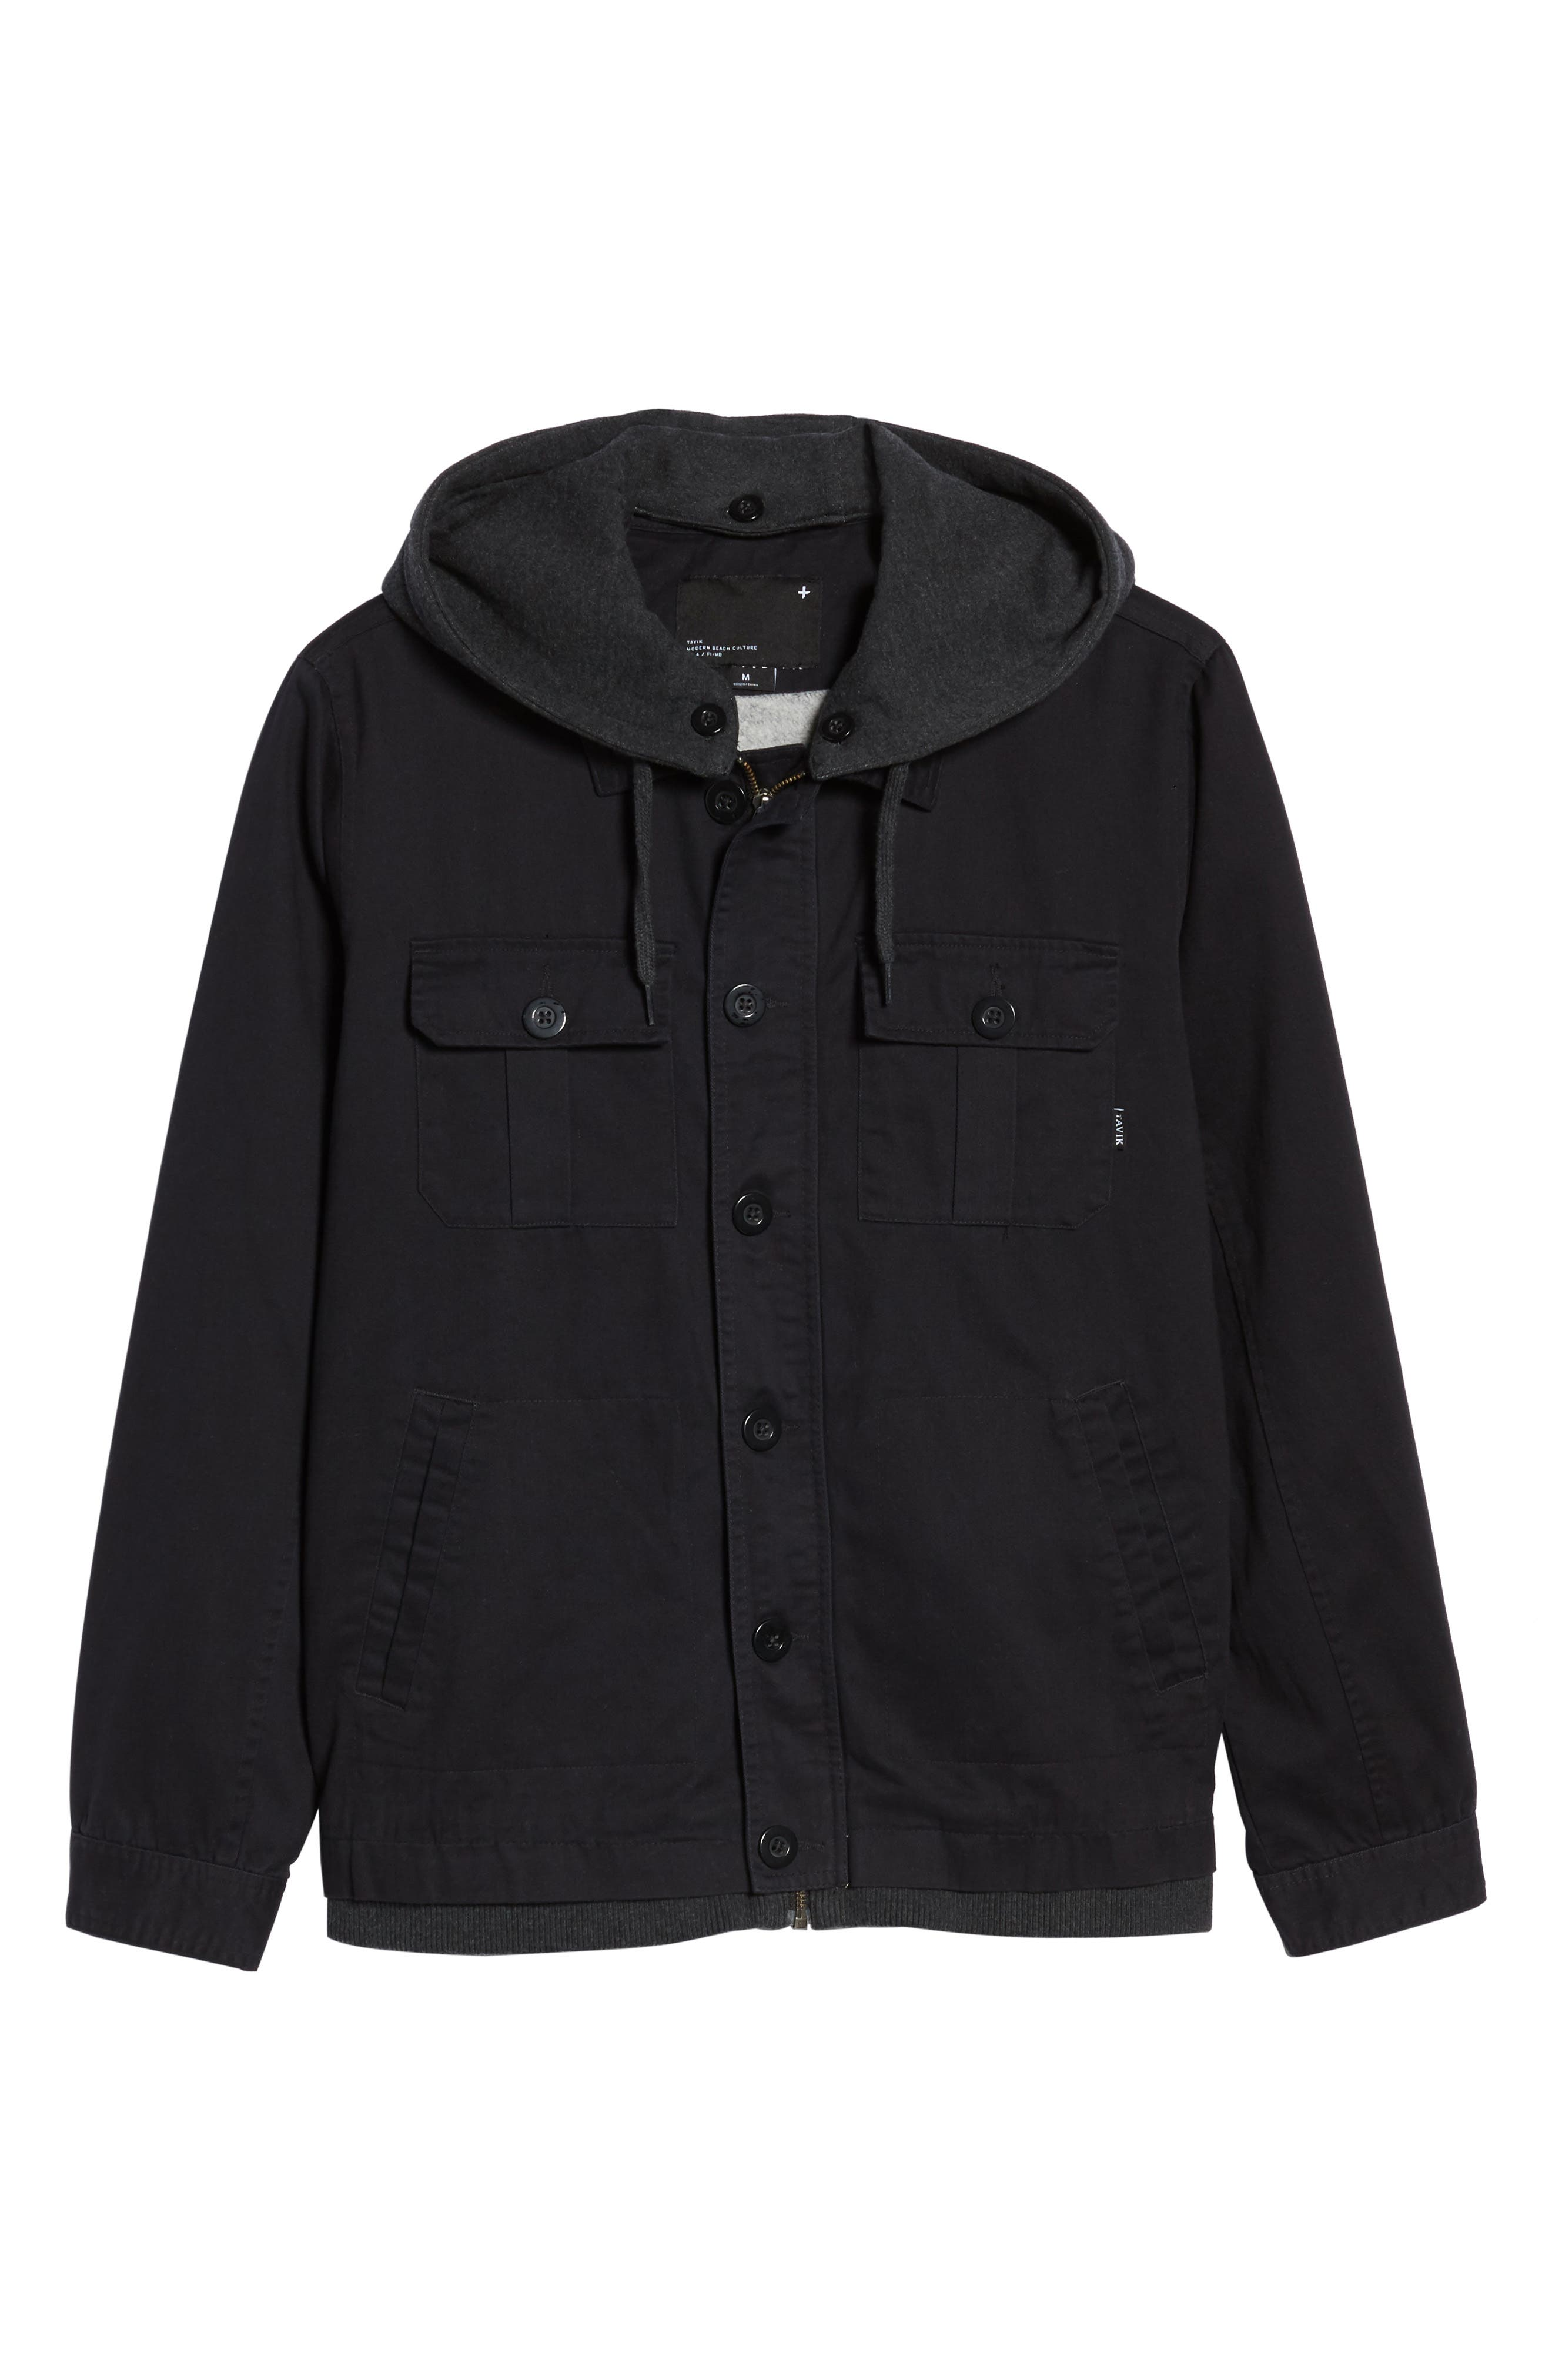 Droogs Field Jacket with Detachable Hood,                             Alternate thumbnail 6, color,                             Grey/ Heather Grey